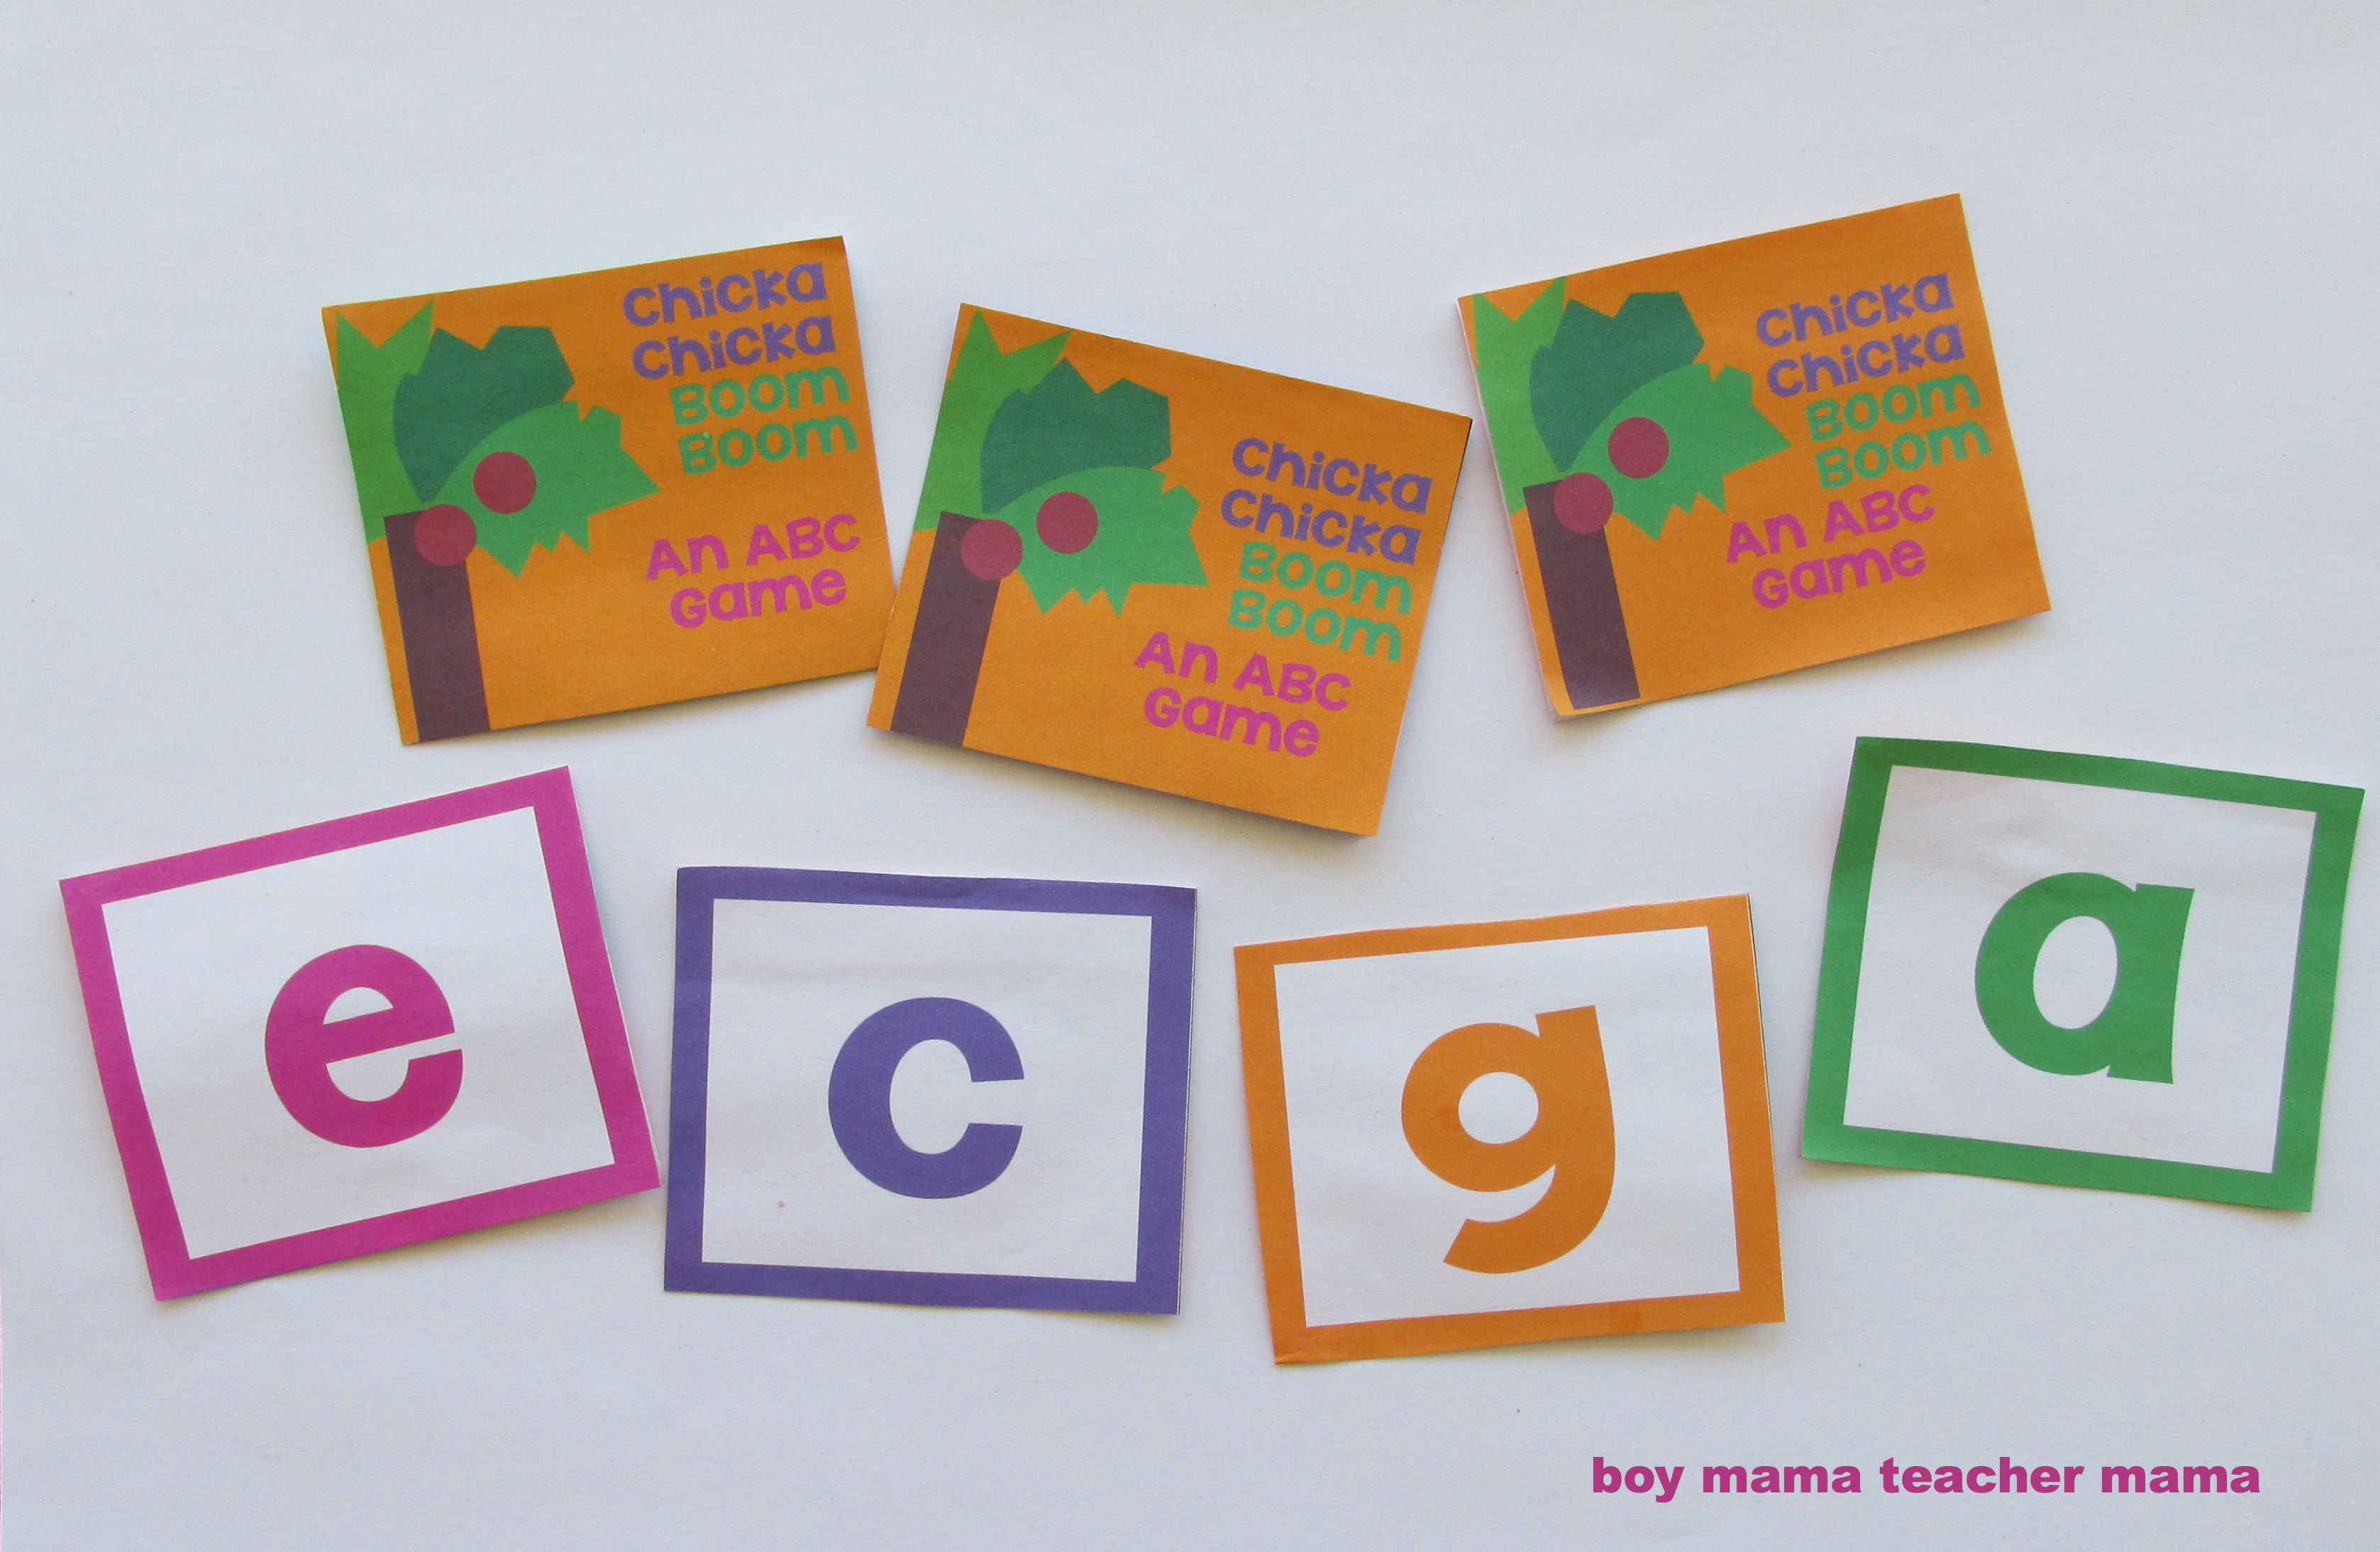 Book Mama Free Chicka Chicka Boom Boom Card Game Virtual Book Club For Kids Boy Mama Teacher Mama